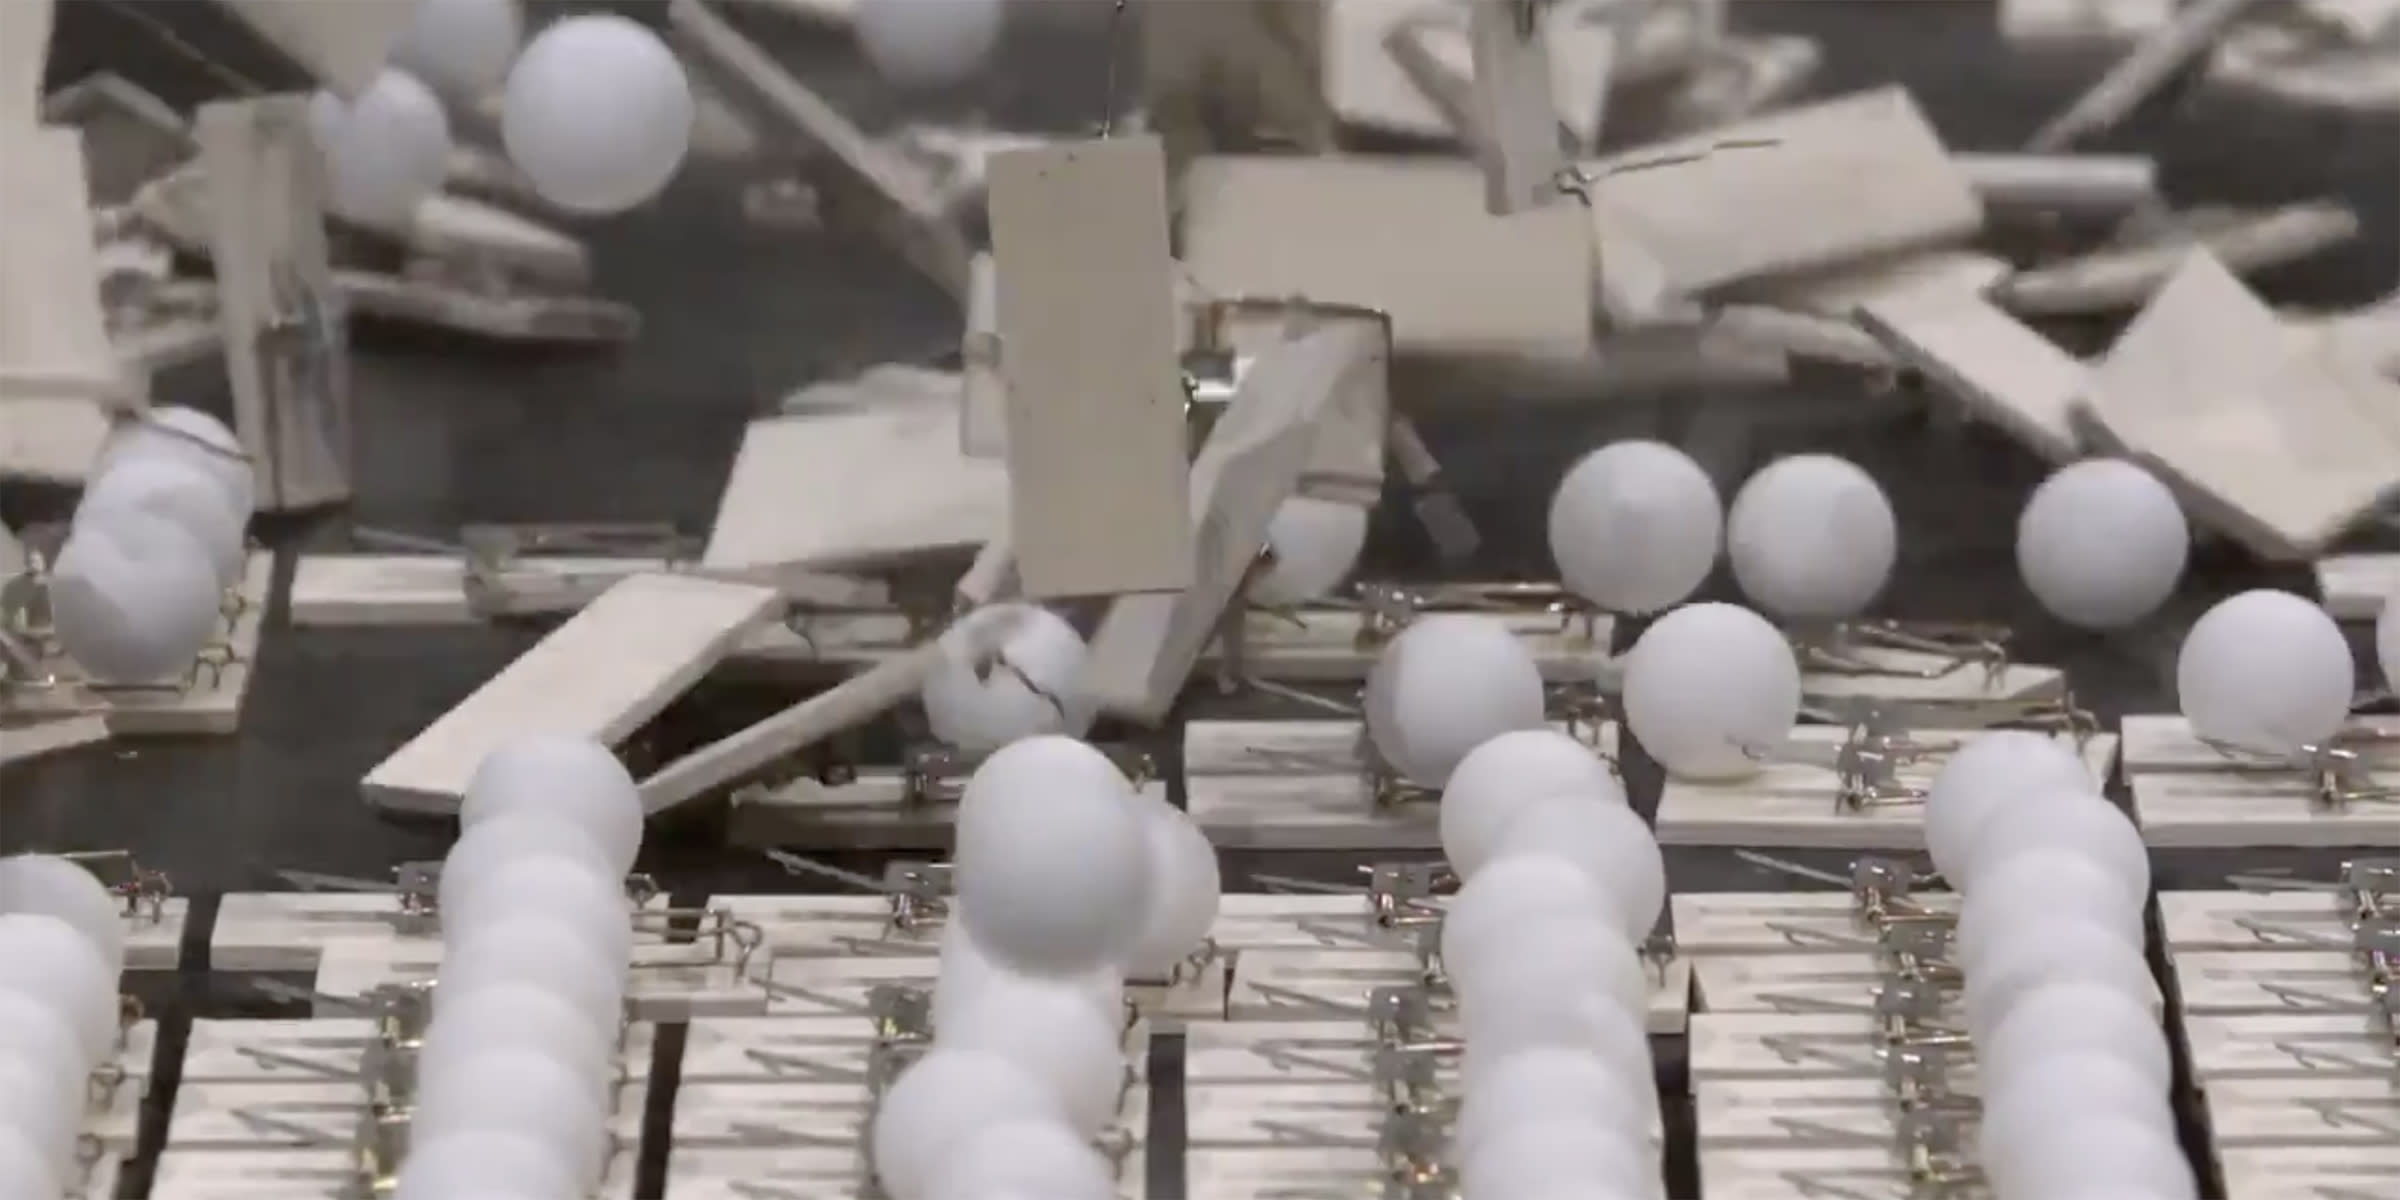 PSA shows how Social distancing works by using ping pong balls